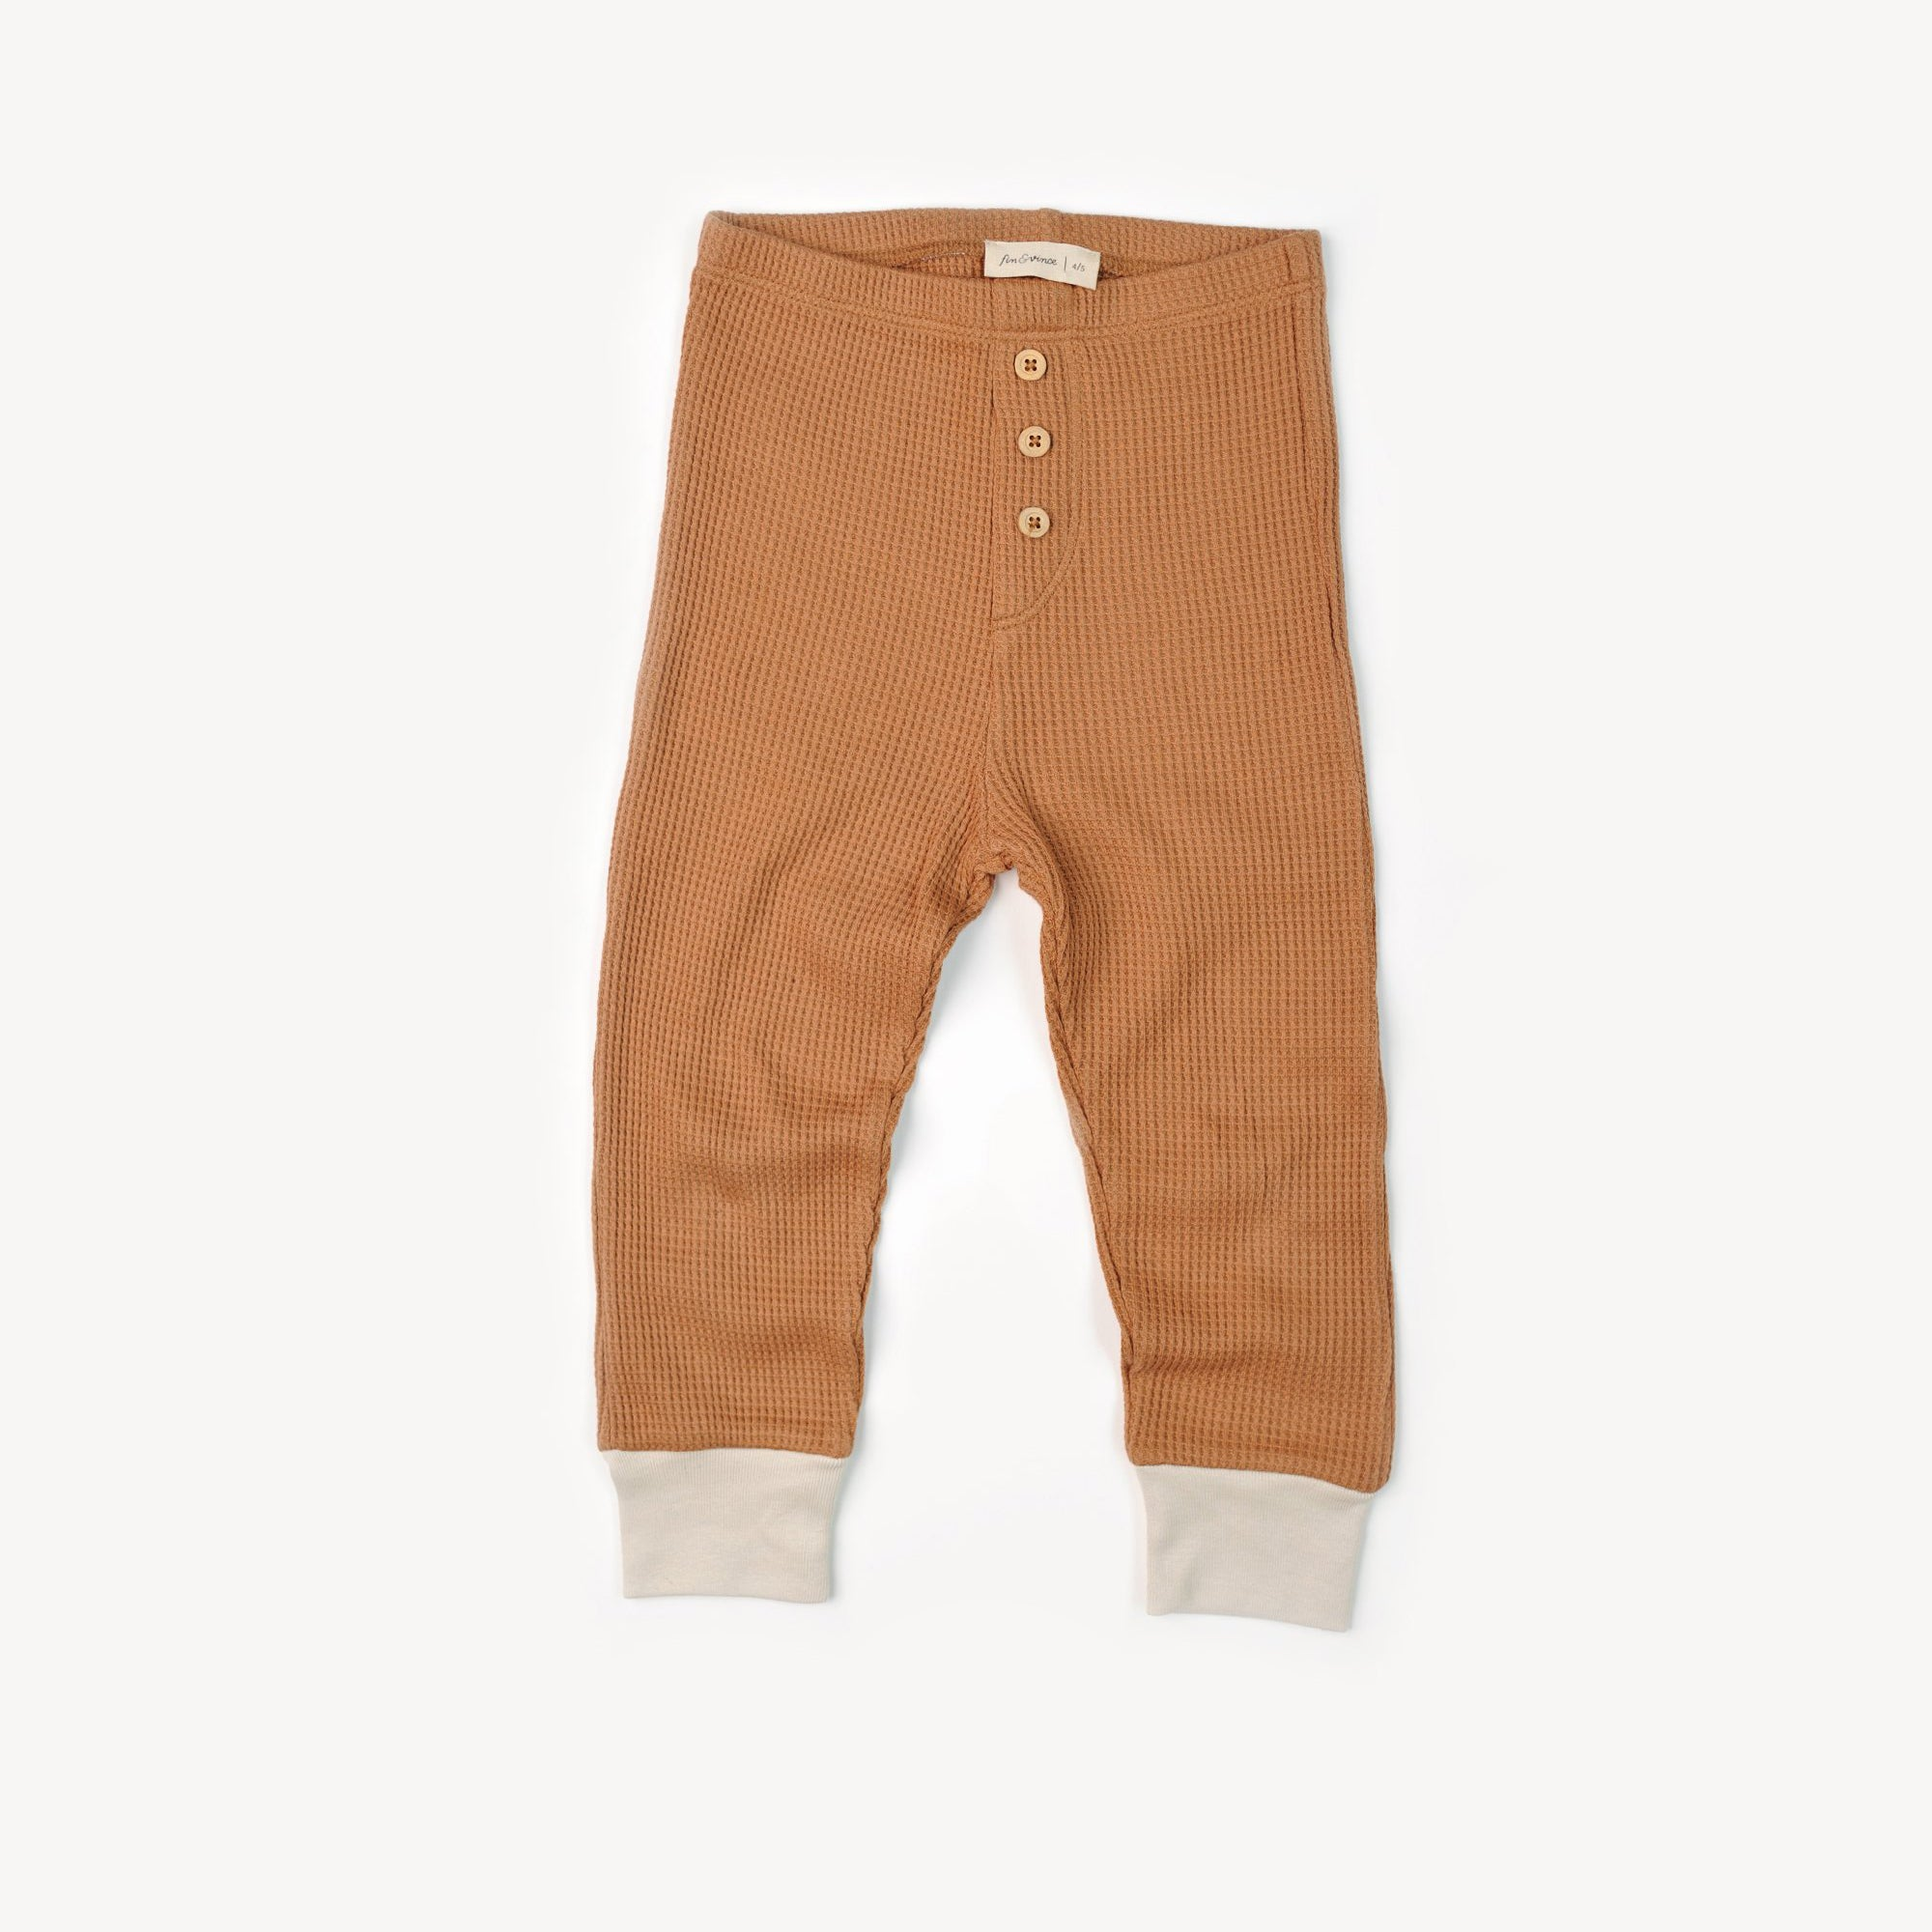 Fin and Vince - Button Pant (Waffle Camel) - Last 8/9